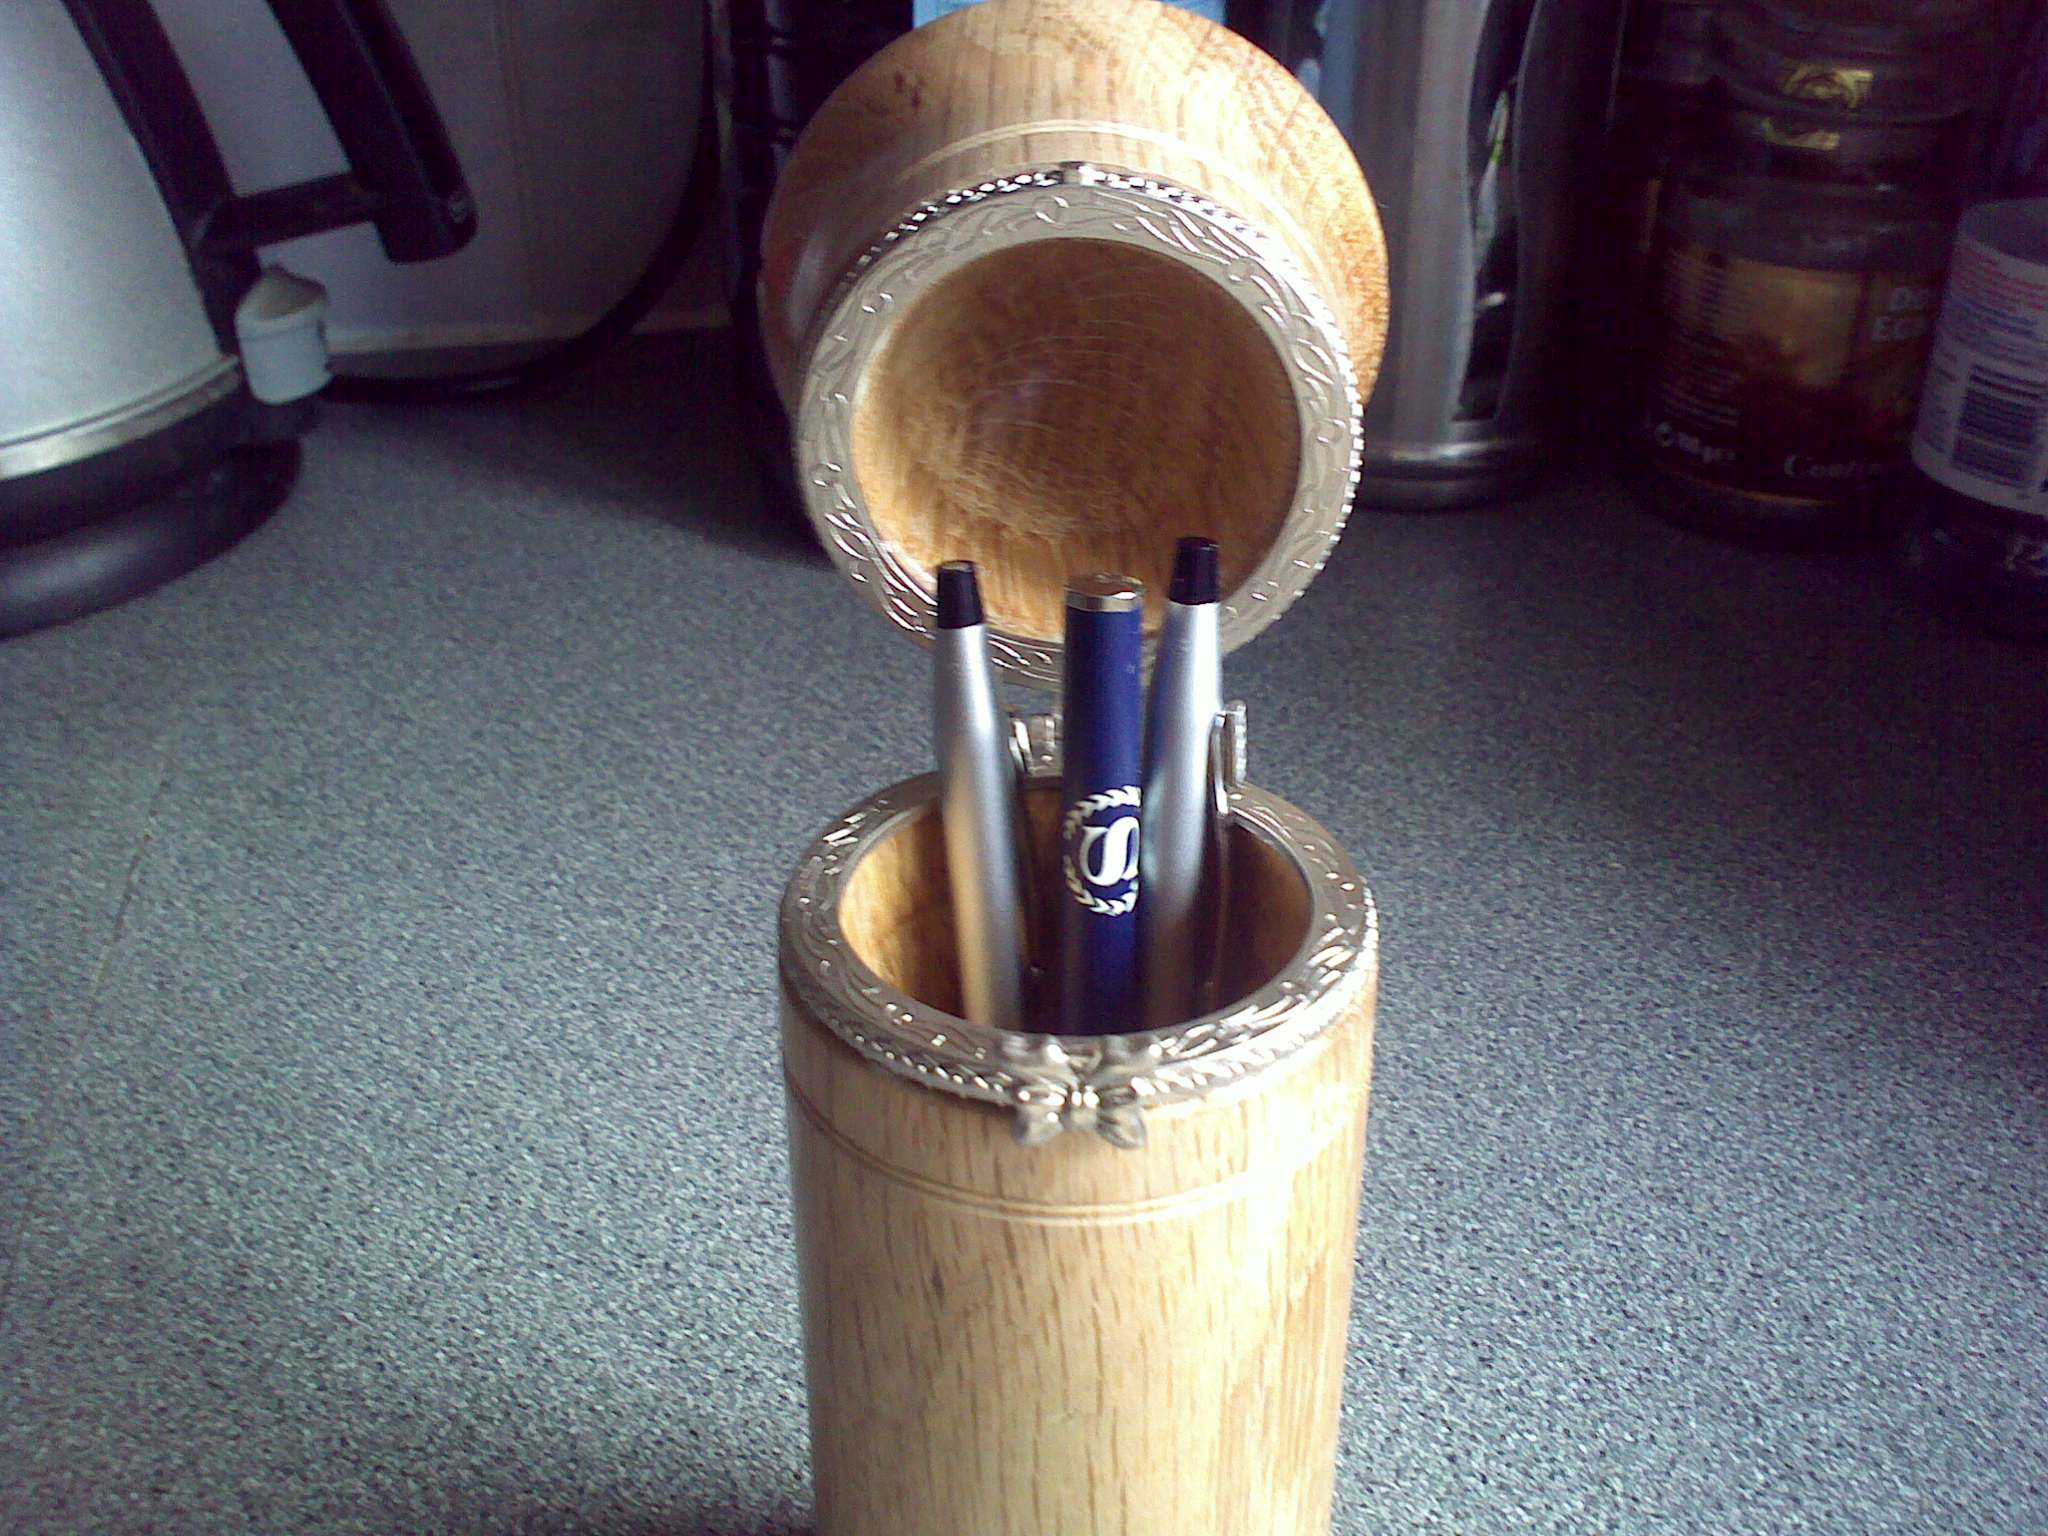 lidded box with pens